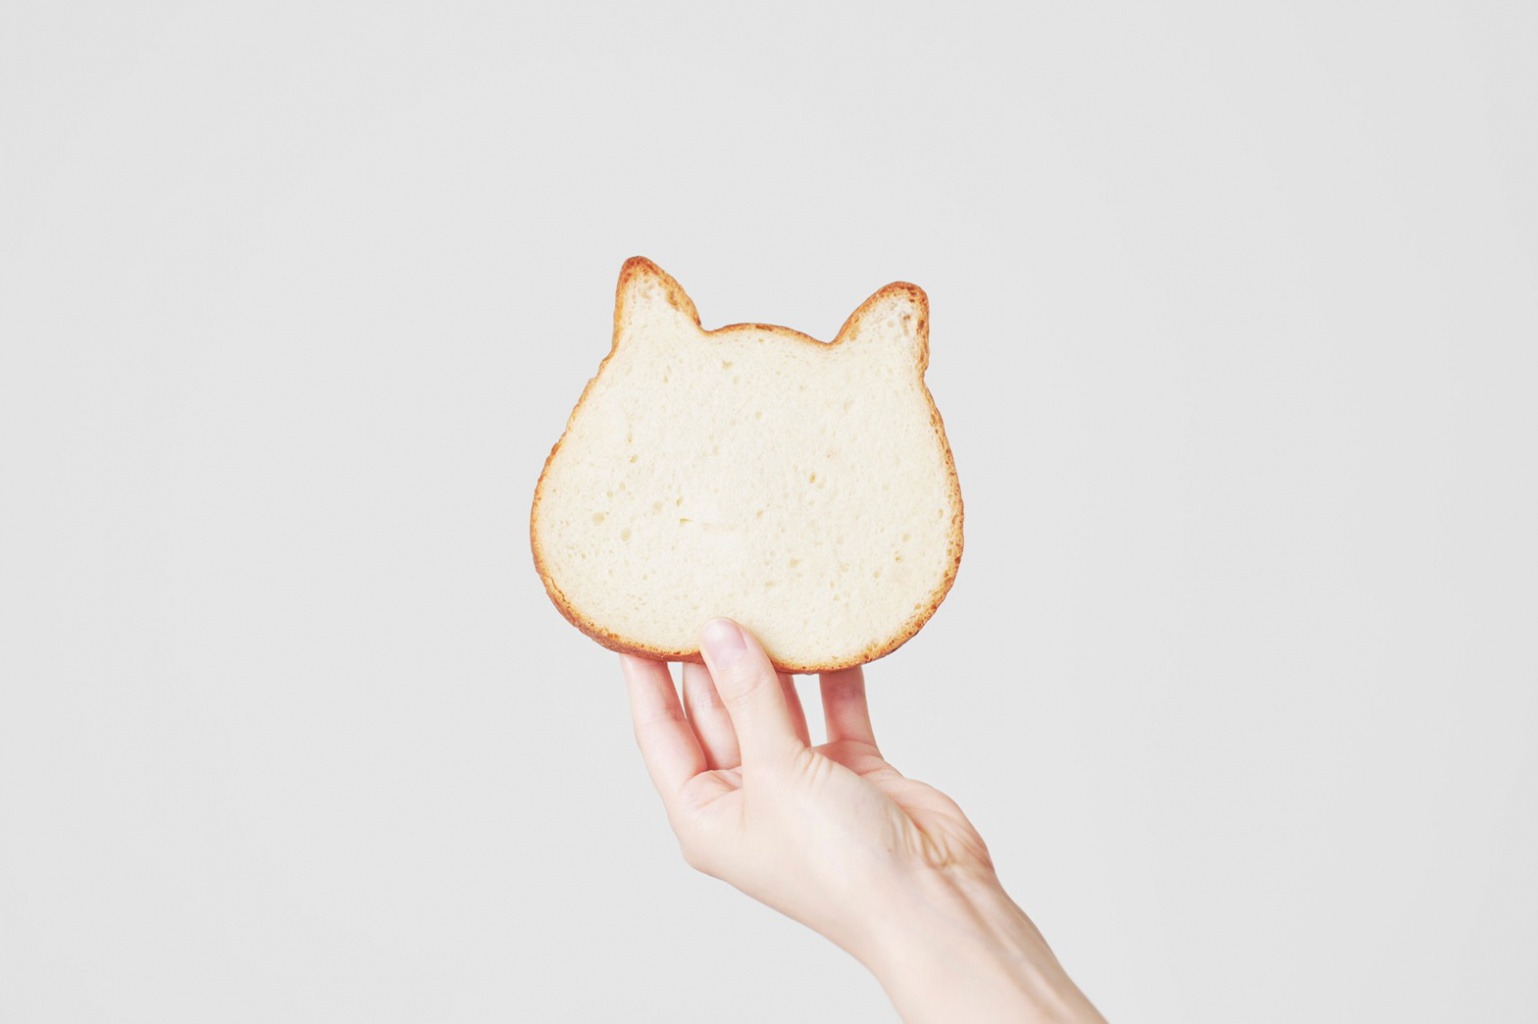 cat toast4.jpg (118 KB)